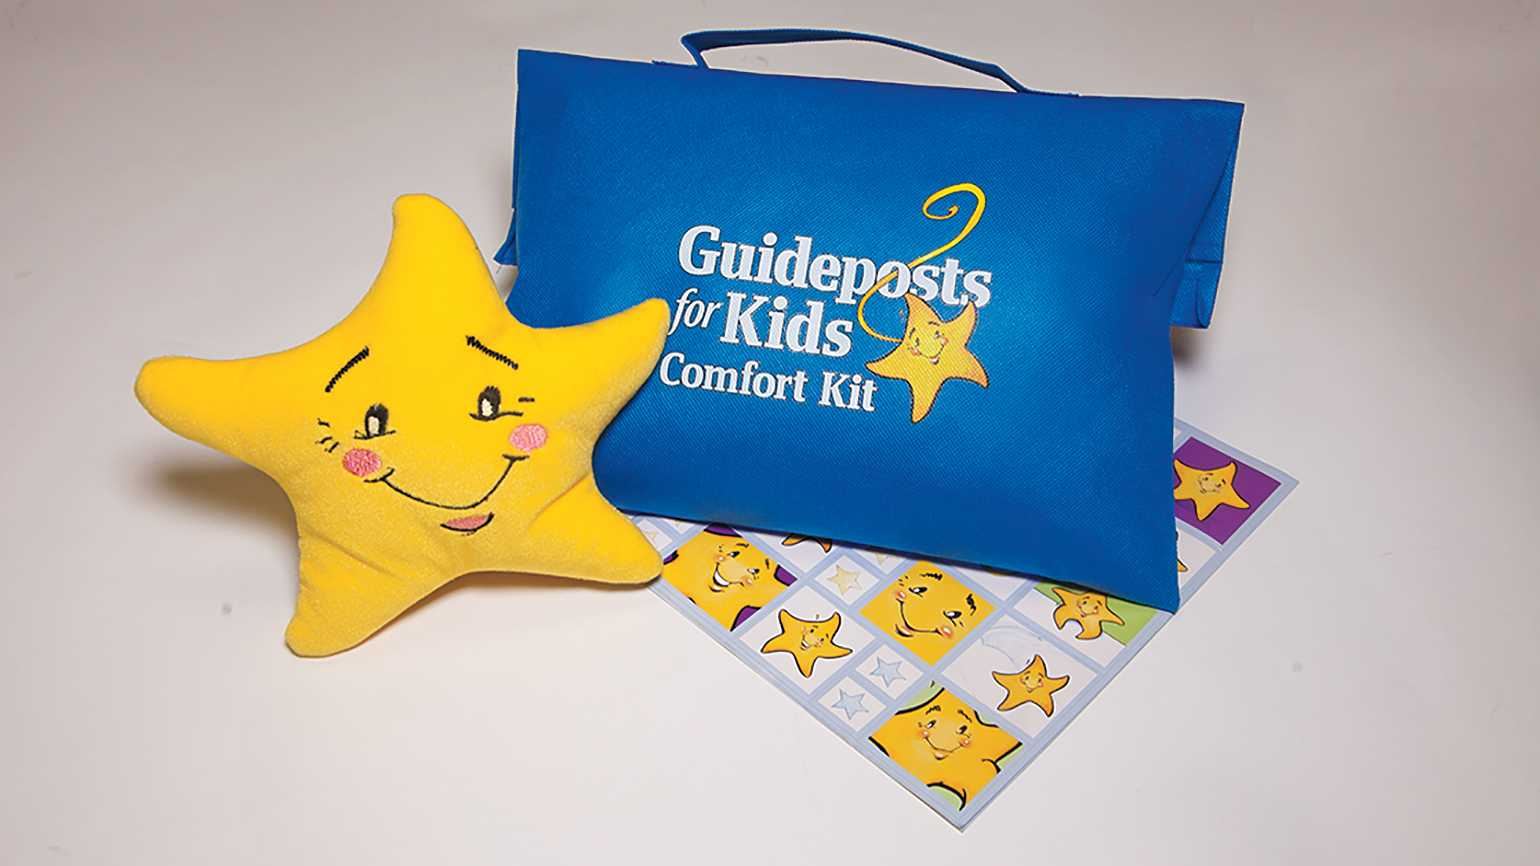 A Comfort Kit from Guideposts